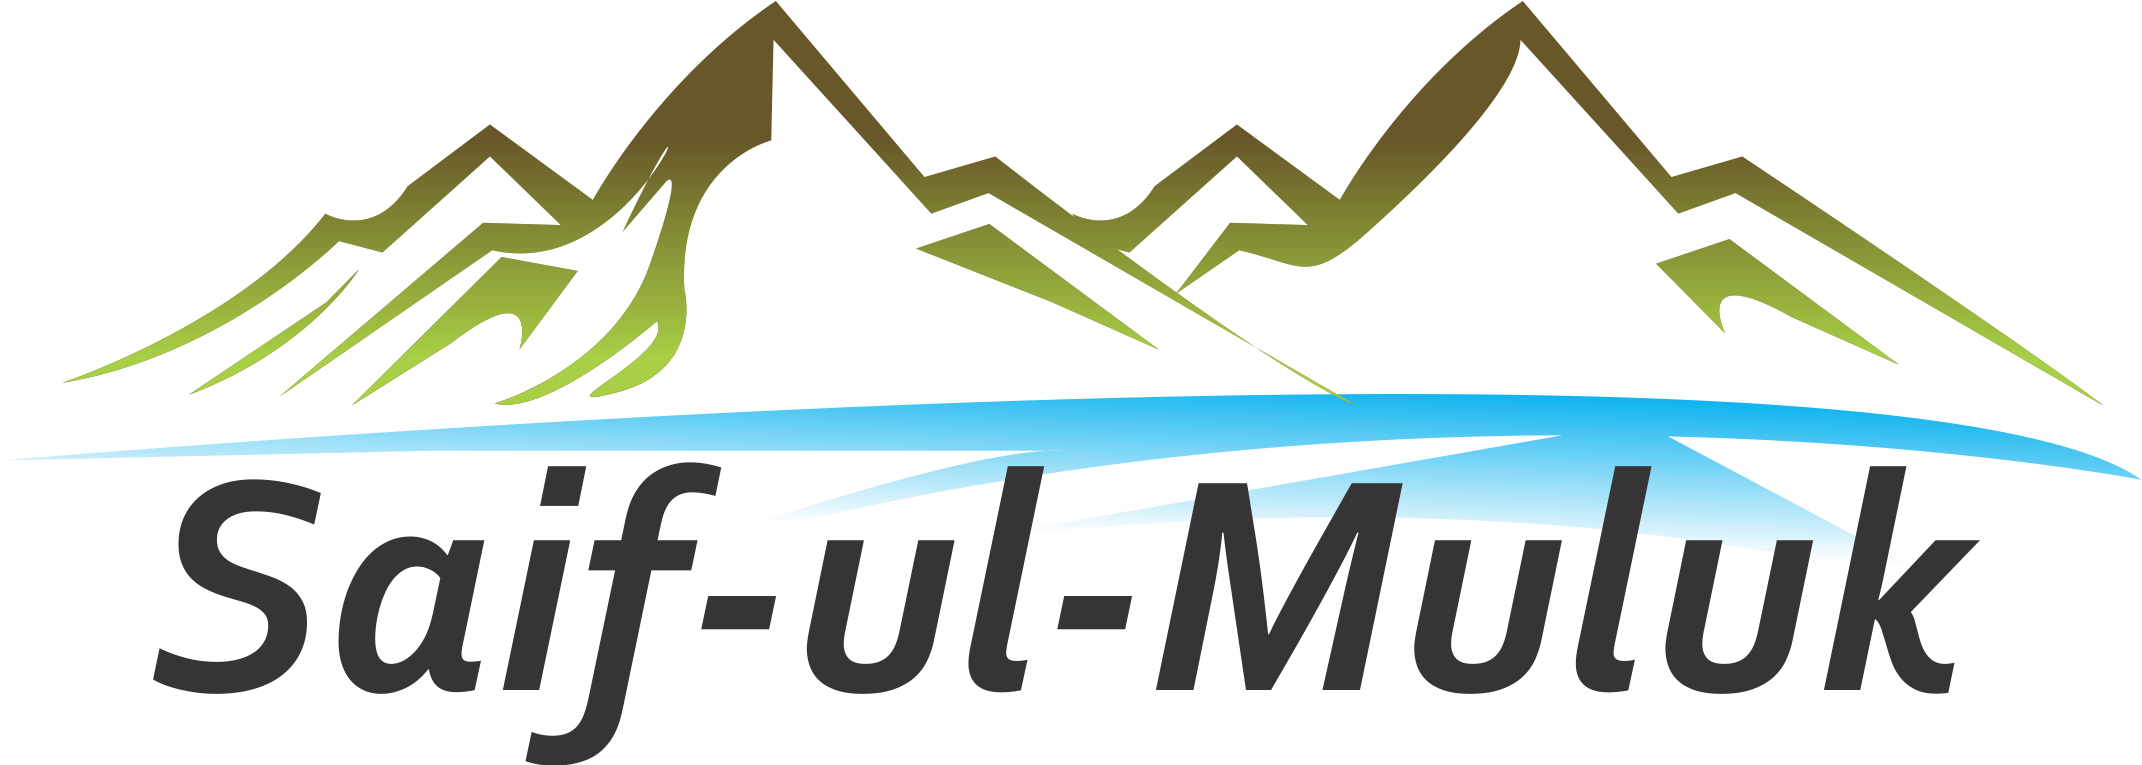 SaifulMuluk Tour and Travel Company | Saif-Ul-Muluk | Cruises - SaifulMuluk Tour and Travel Company | Saif-Ul-Muluk